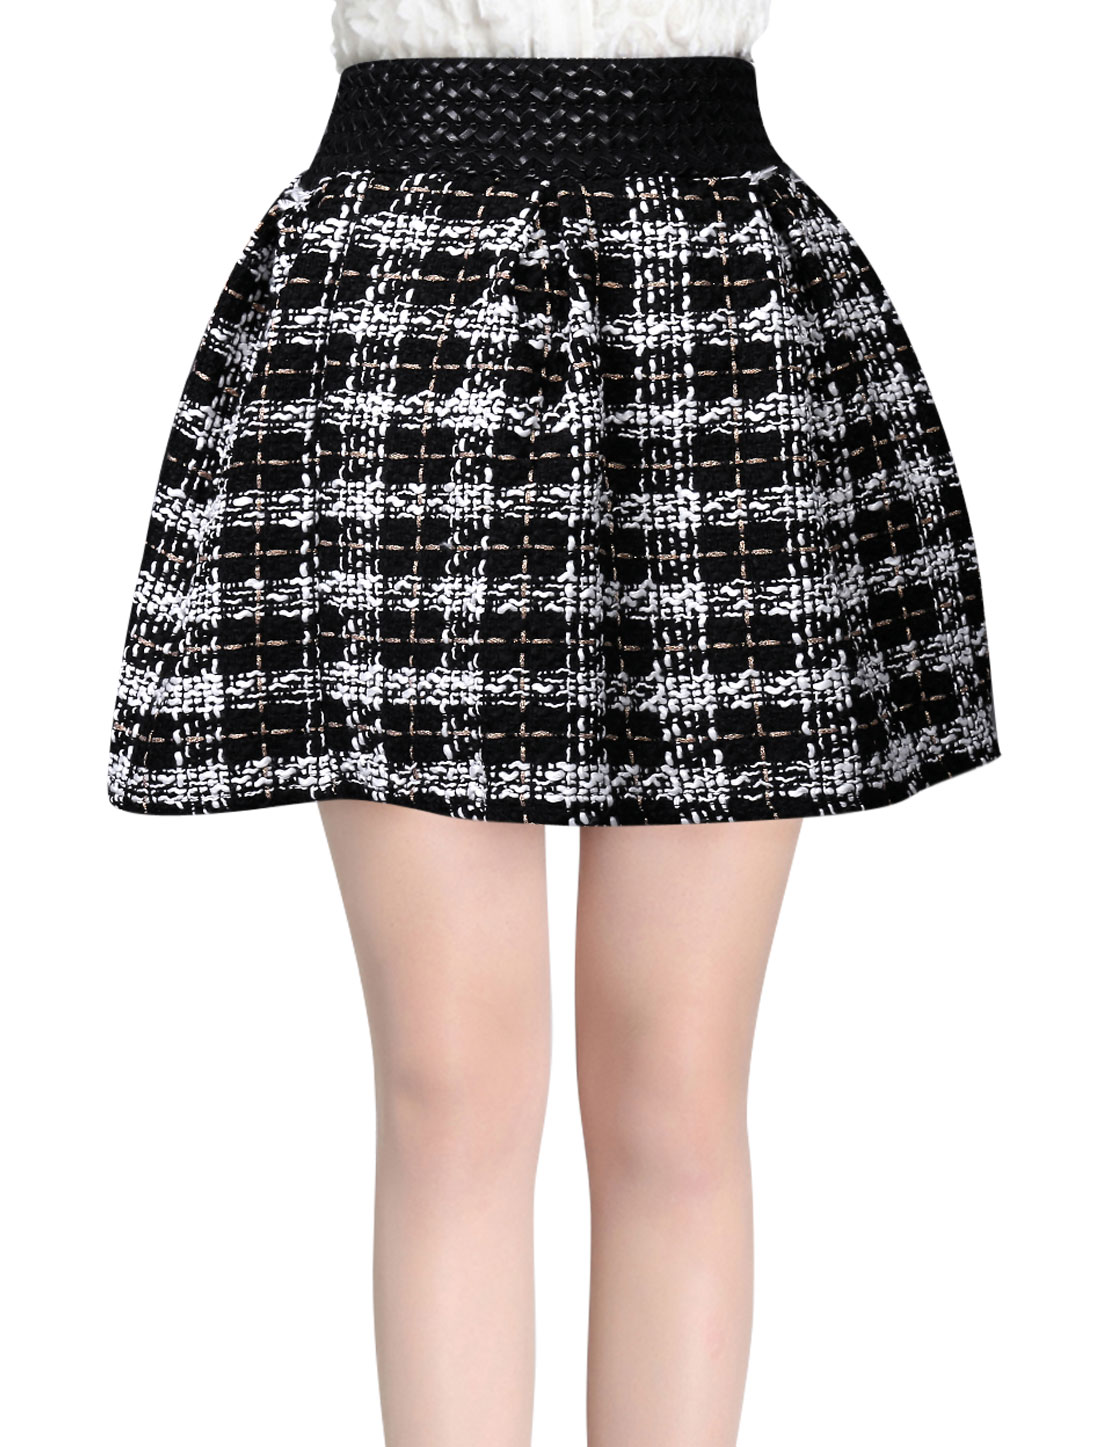 Women Natural Waist Intertexture Design Casual A-Line Skirt Black White XS